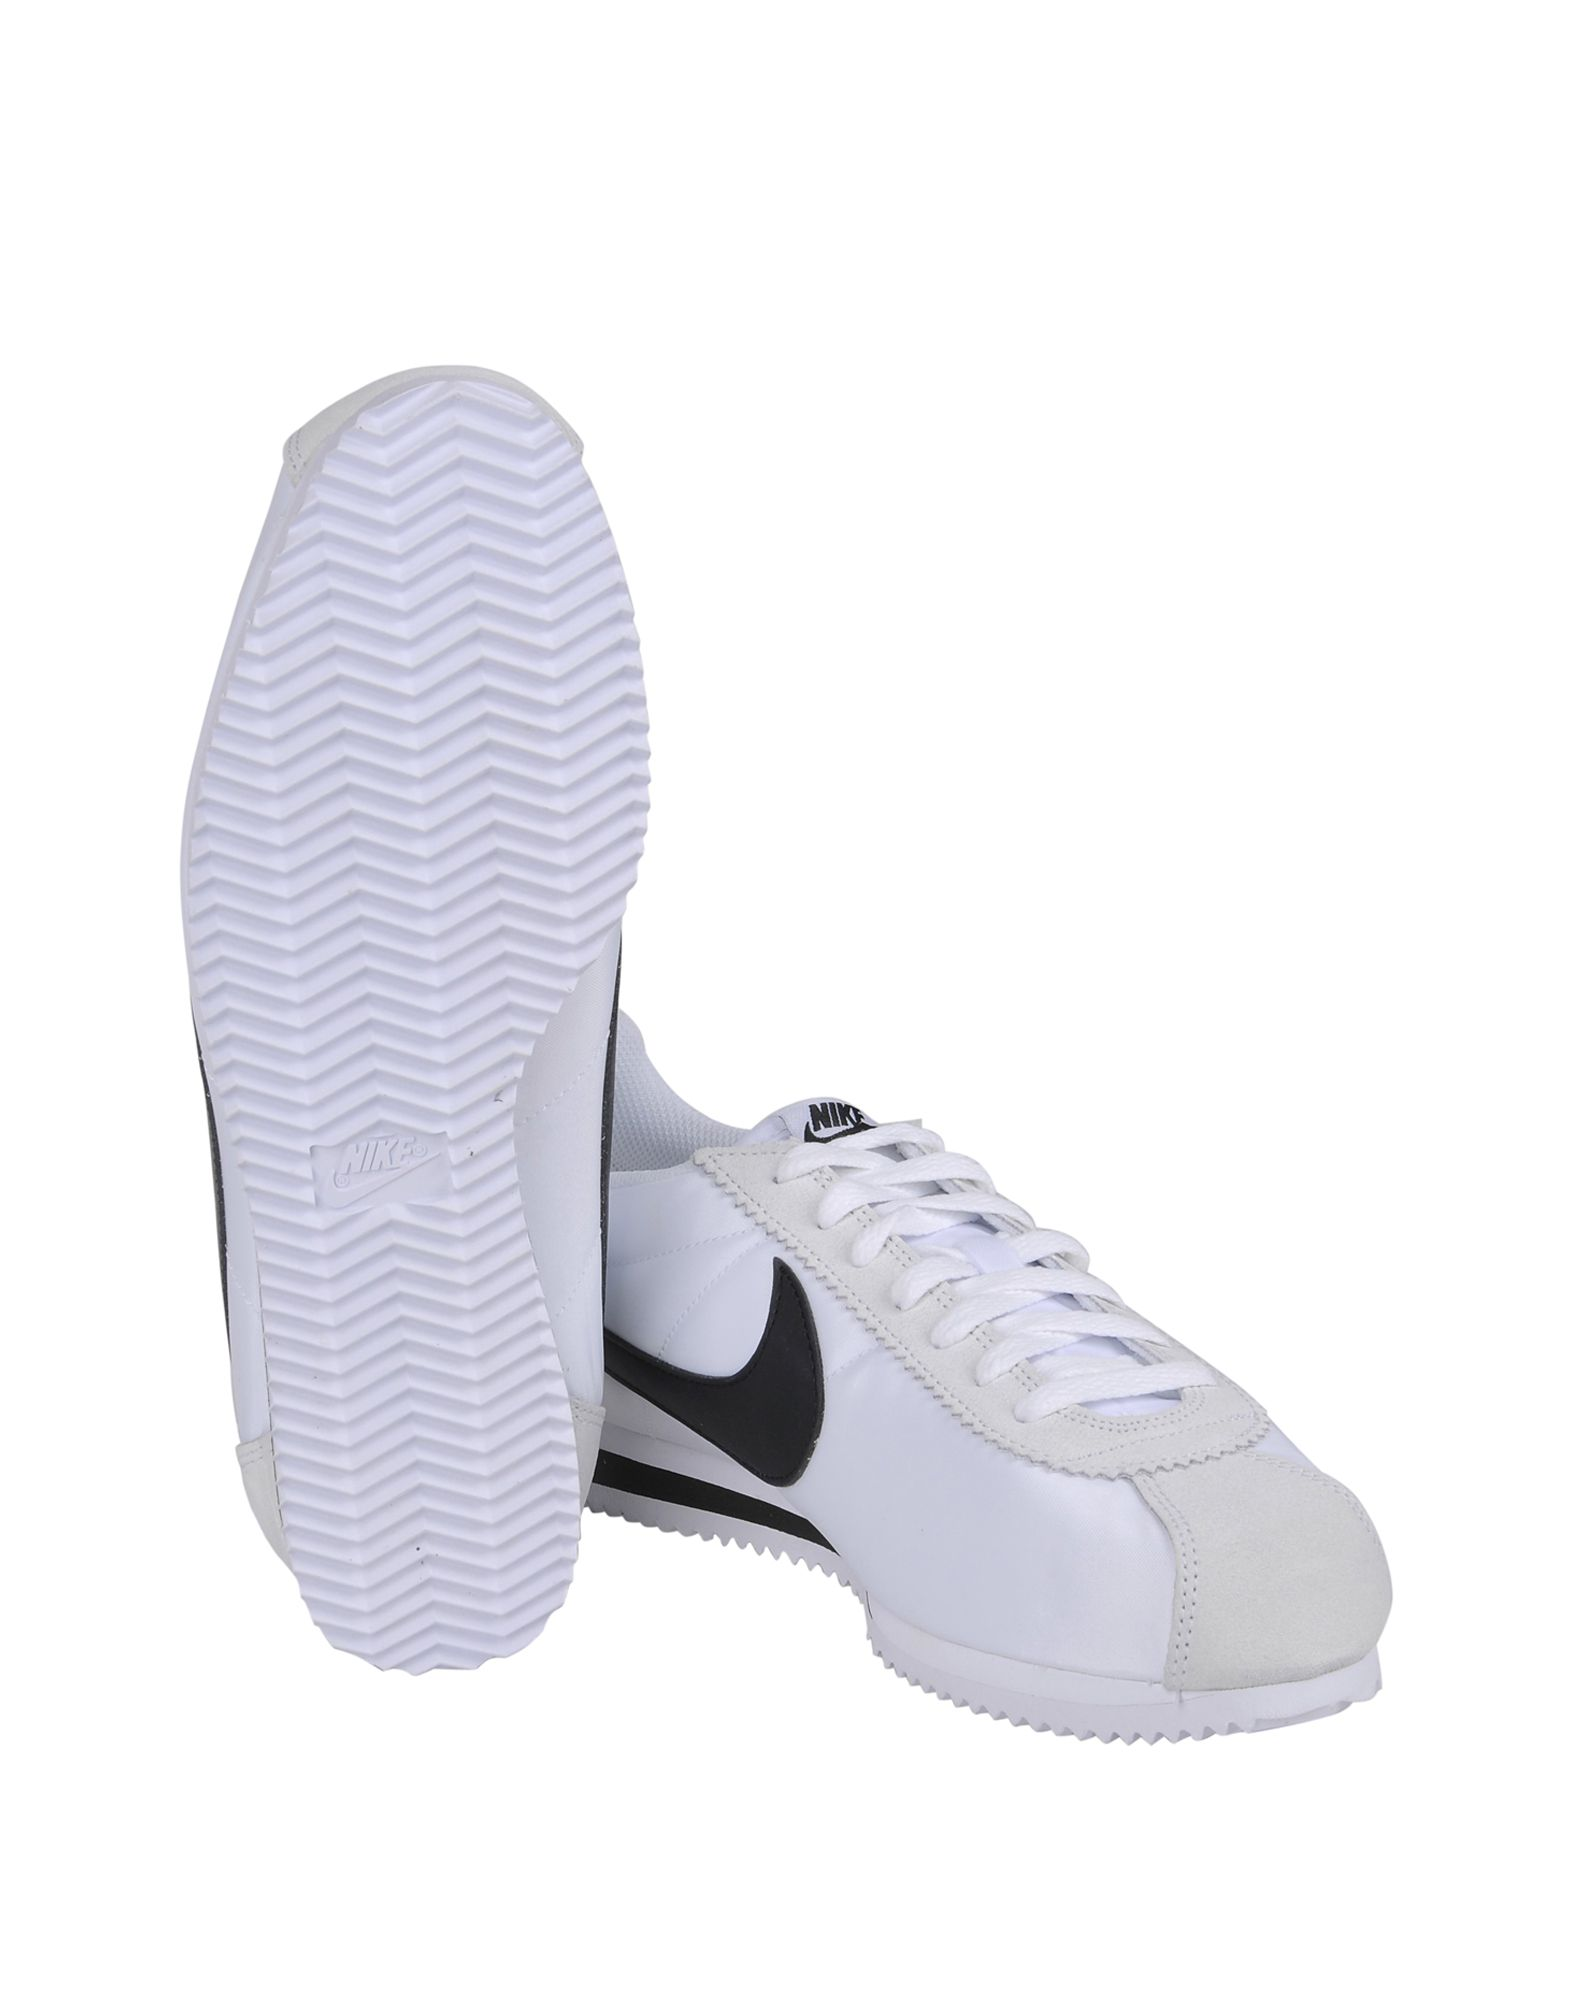 Nike Classic Cortez Nylon Nike - Sneakers - Men Nike Nylon Sneakers online on  United Kingdom - 11062636VO 1be5b4